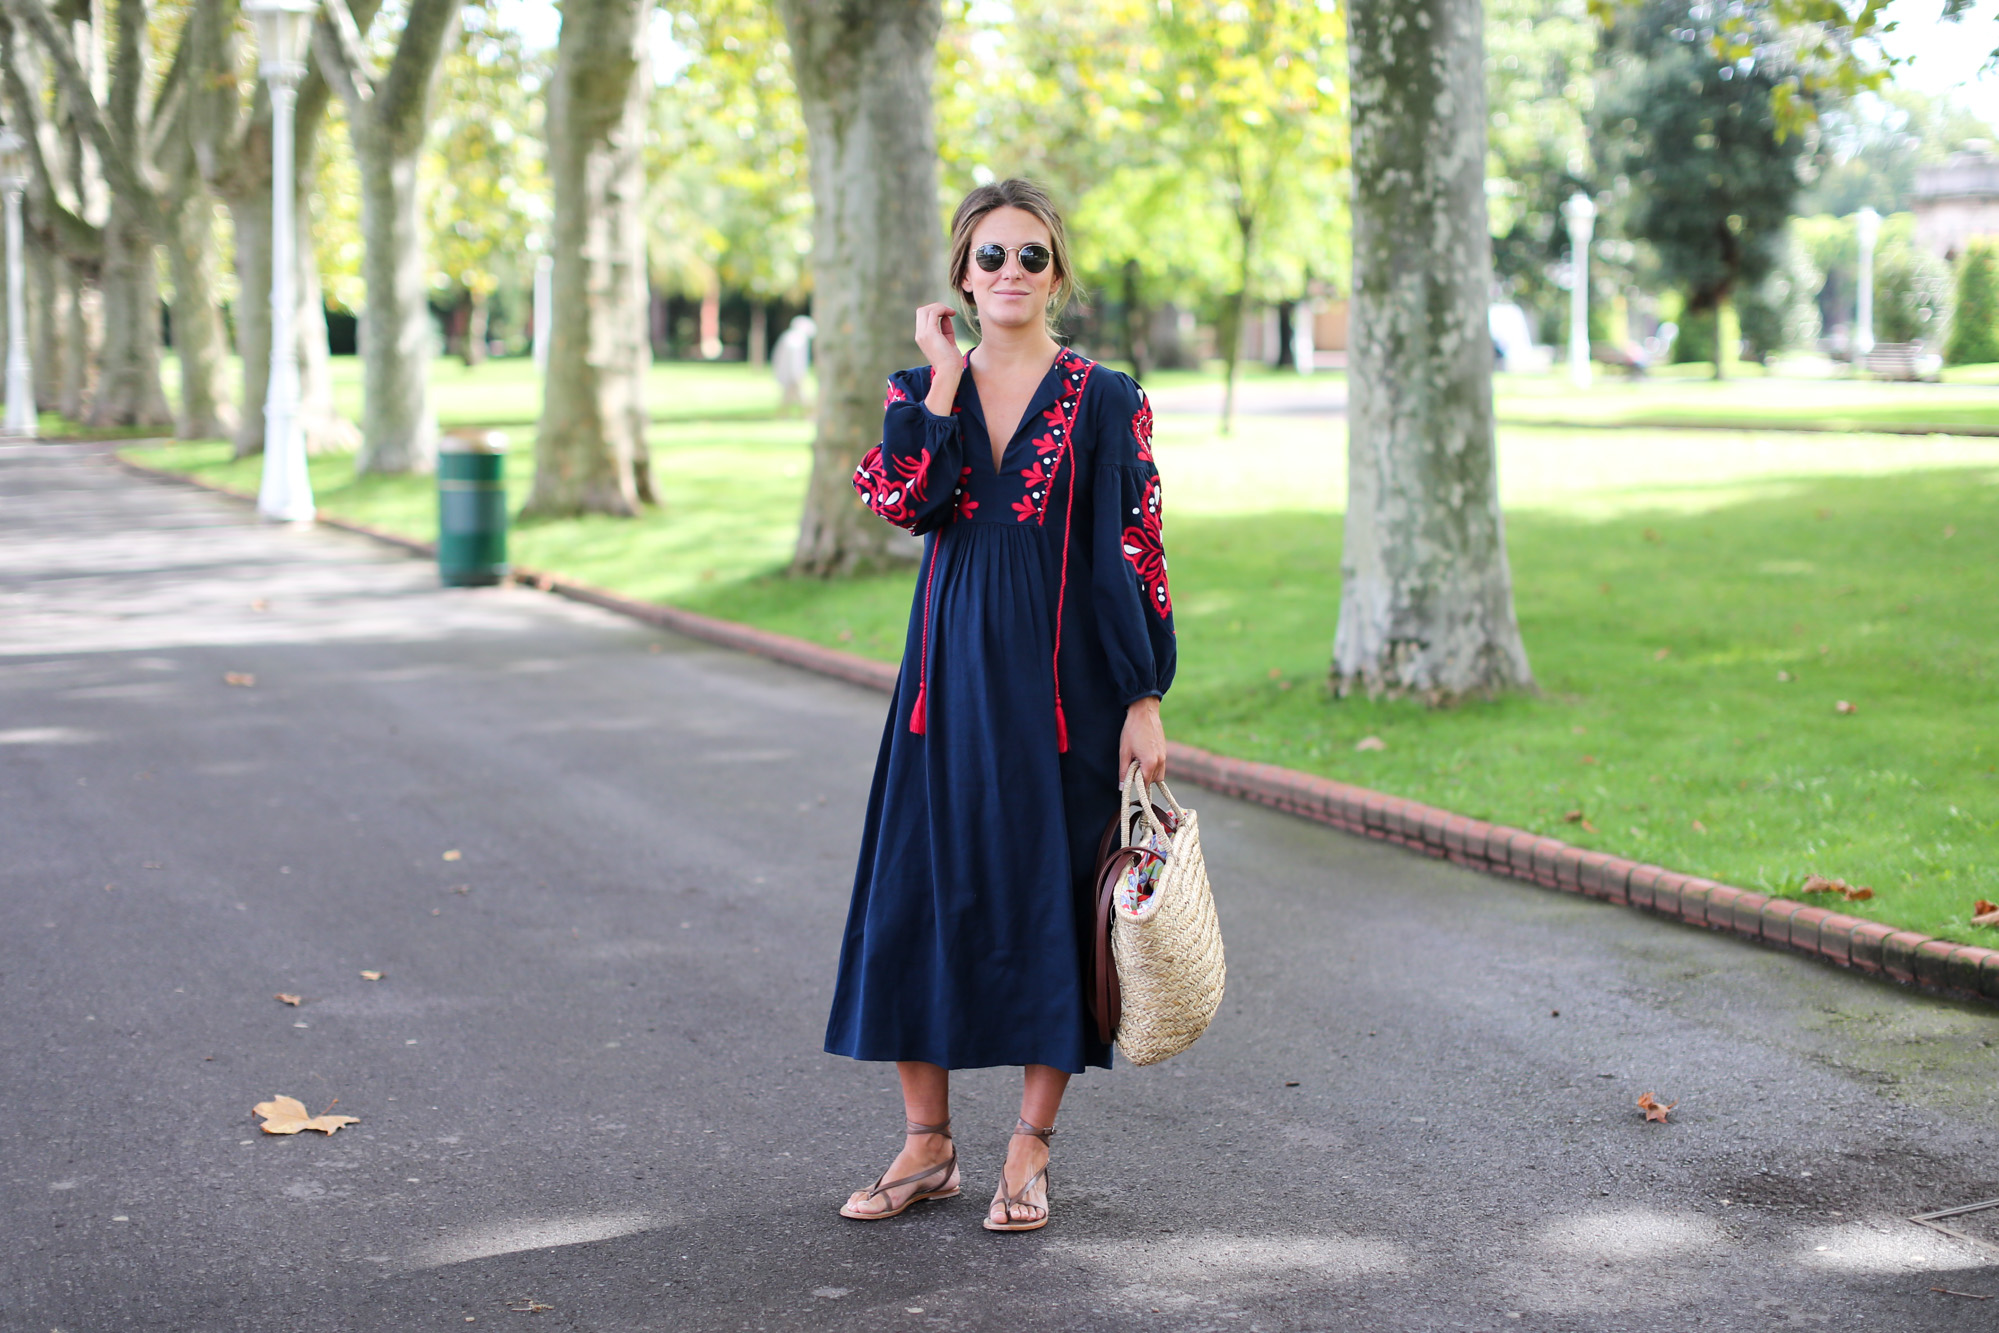 Clochet_streetstyle_fashionblogger_bilbao_zara_embroided_traditional_dress_strawbag-5